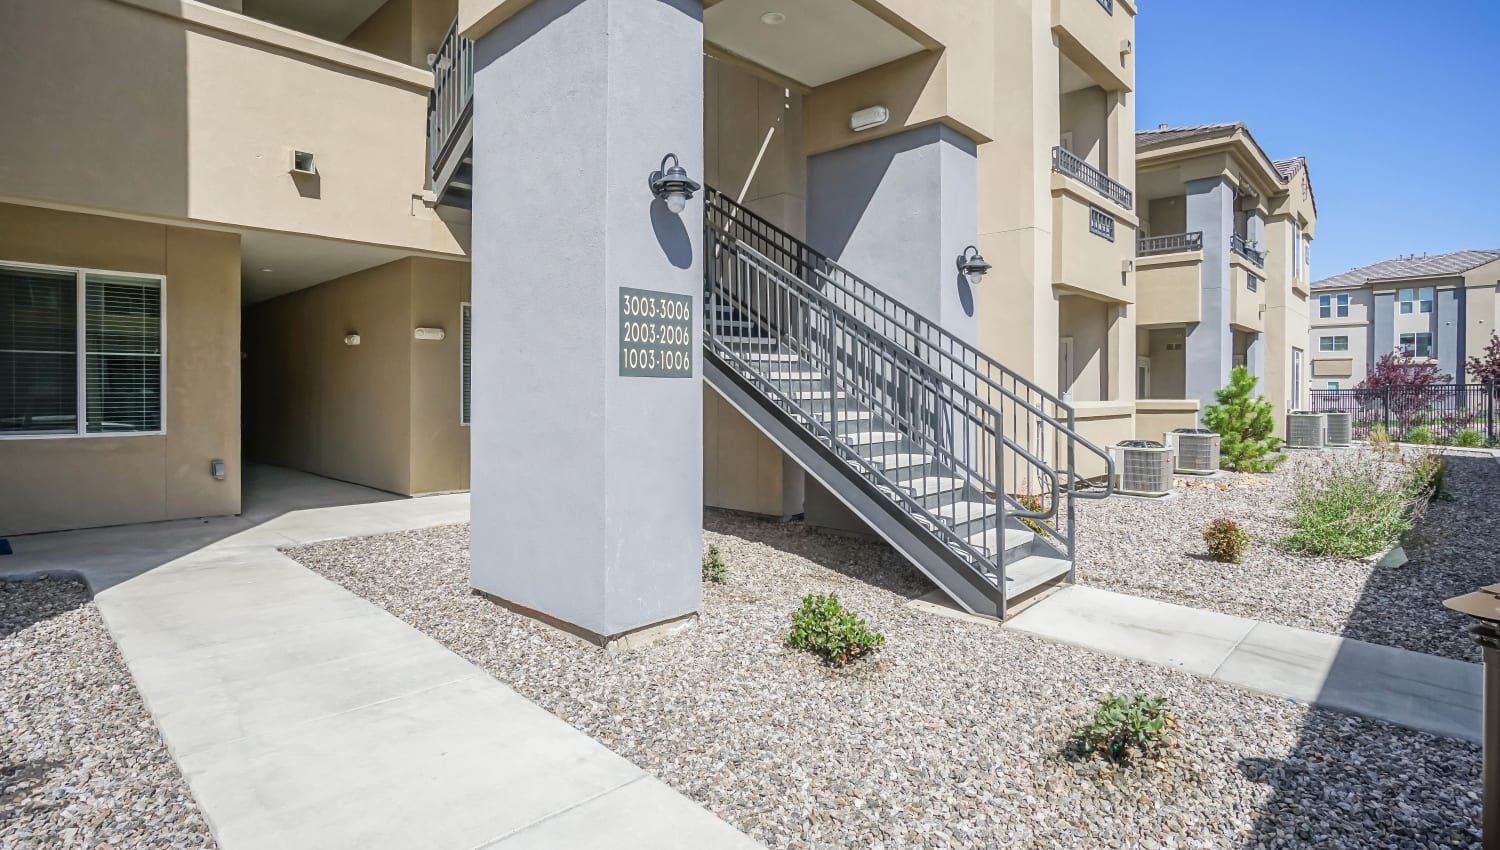 Exterior view of resident buildings at Olympus Northpoint in Albuquerque, New Mexico